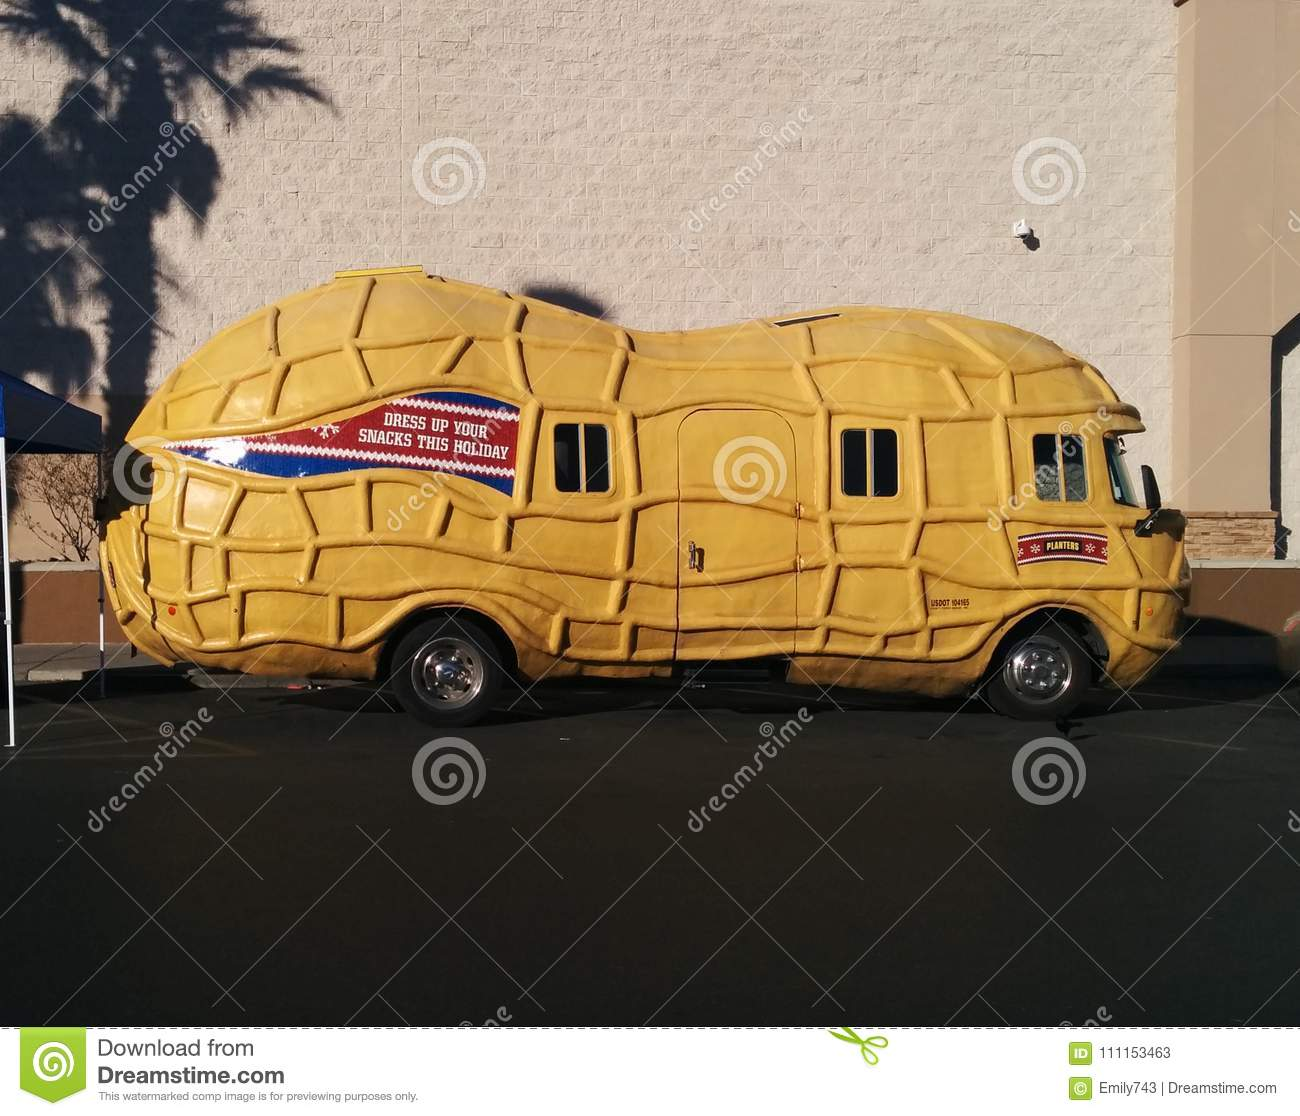 planters peanut mobile in parking lot with palm shadows editorial